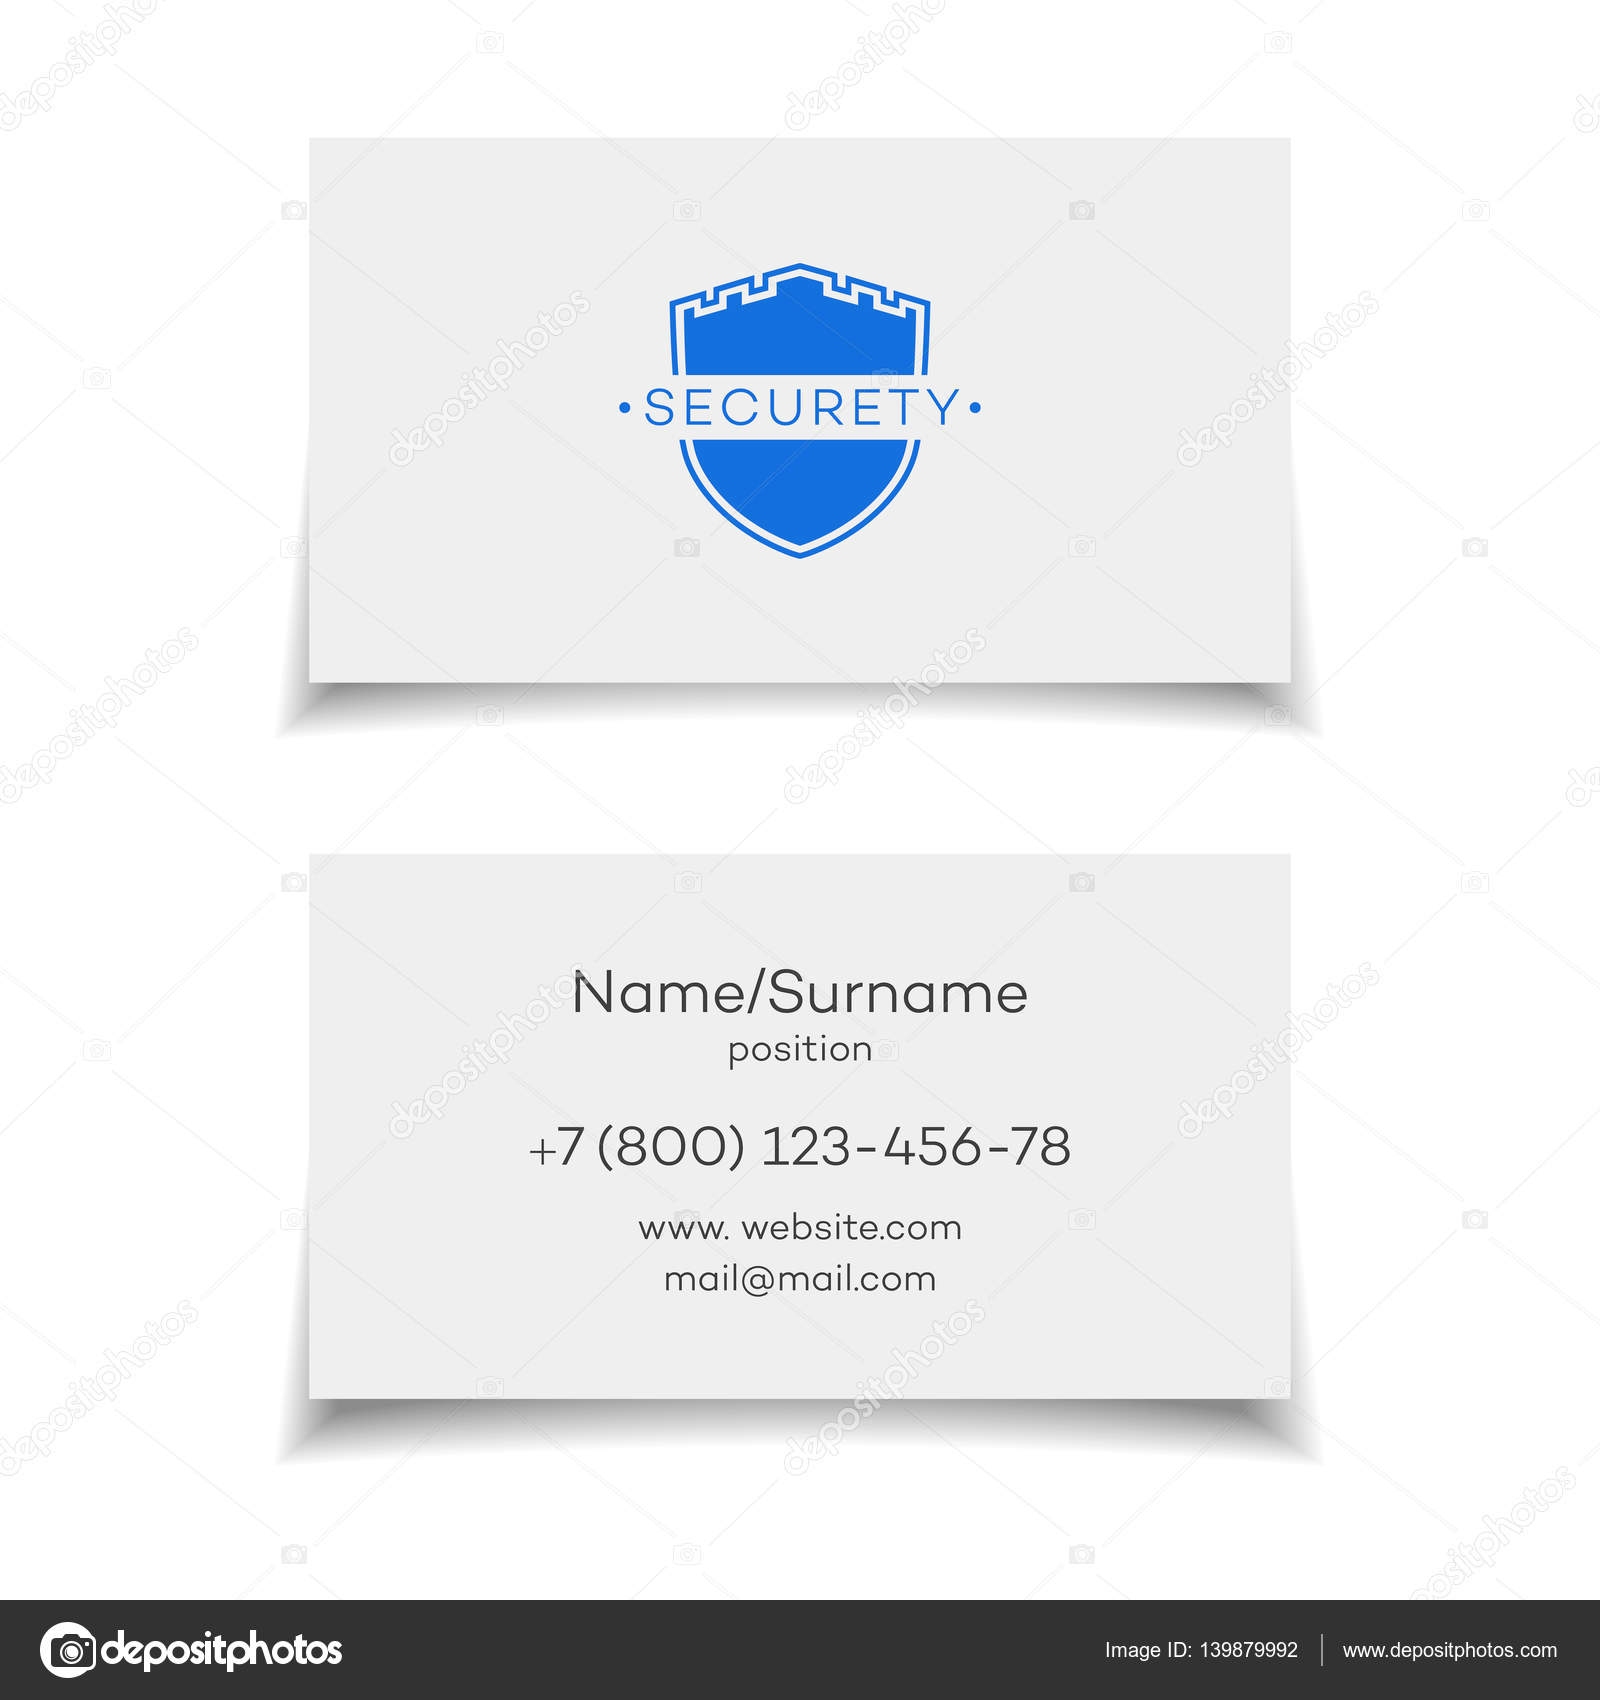 Security business card — Stock Vector © VI6277 #139879992